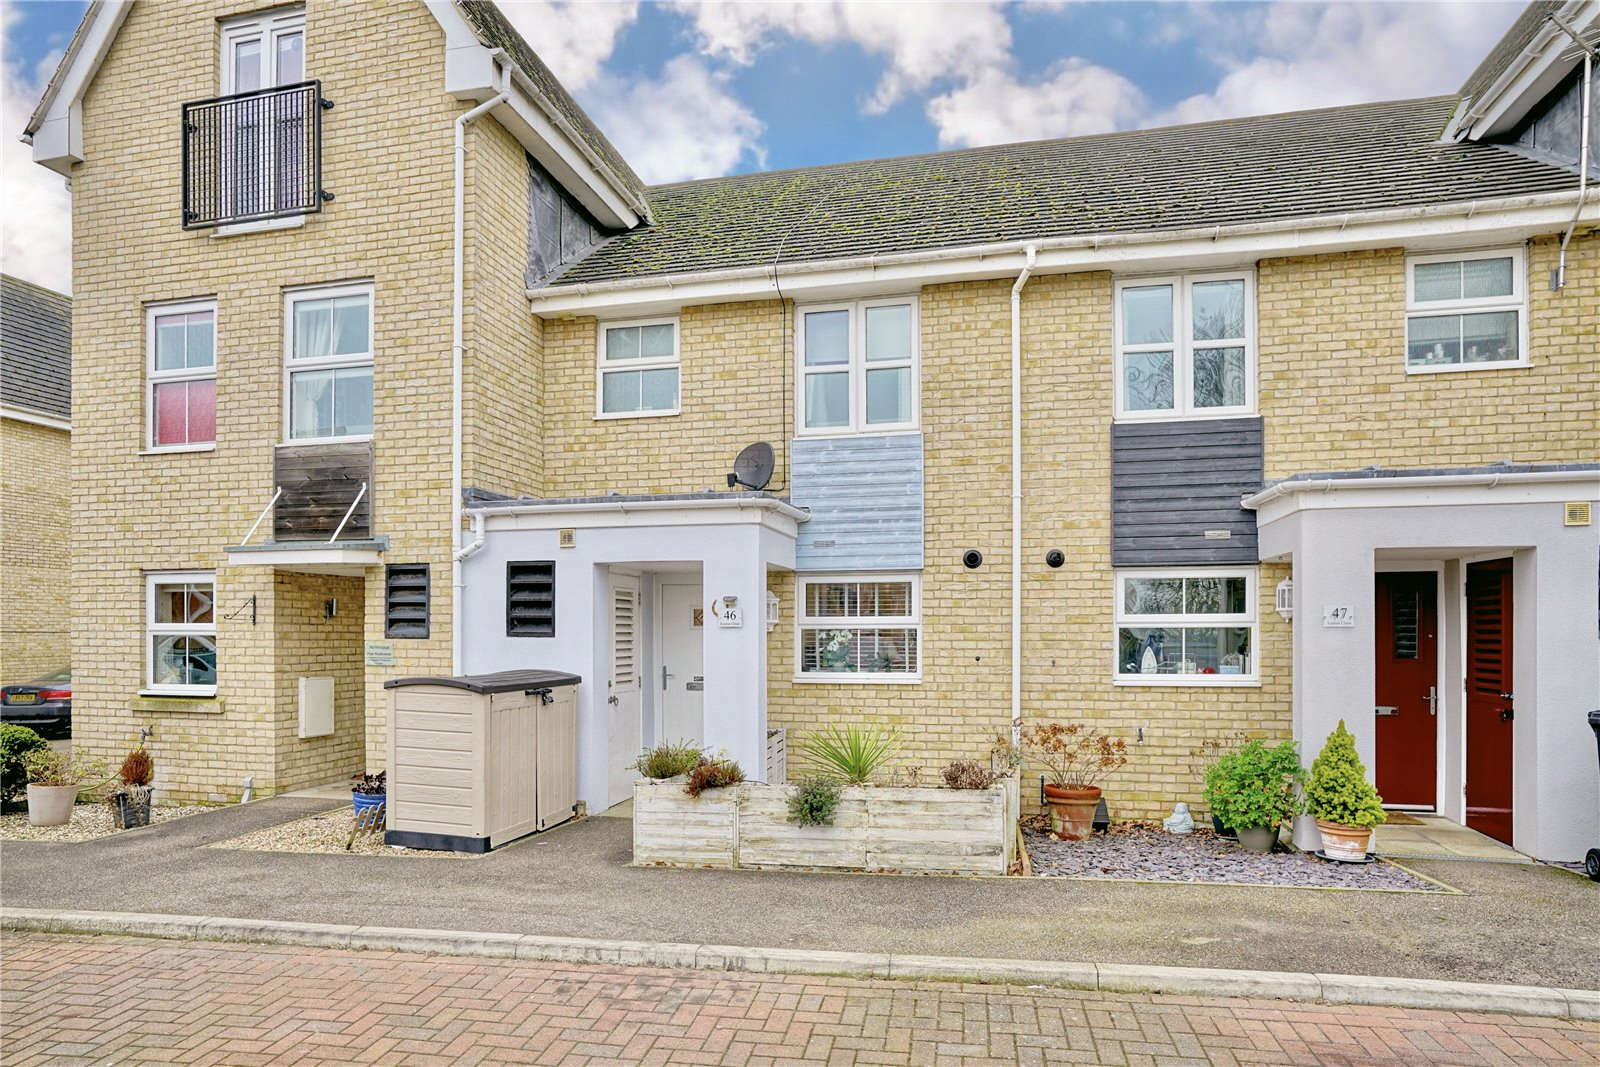 3 bed house for sale in Linton Close, Eaton Socon  - Property Image 11